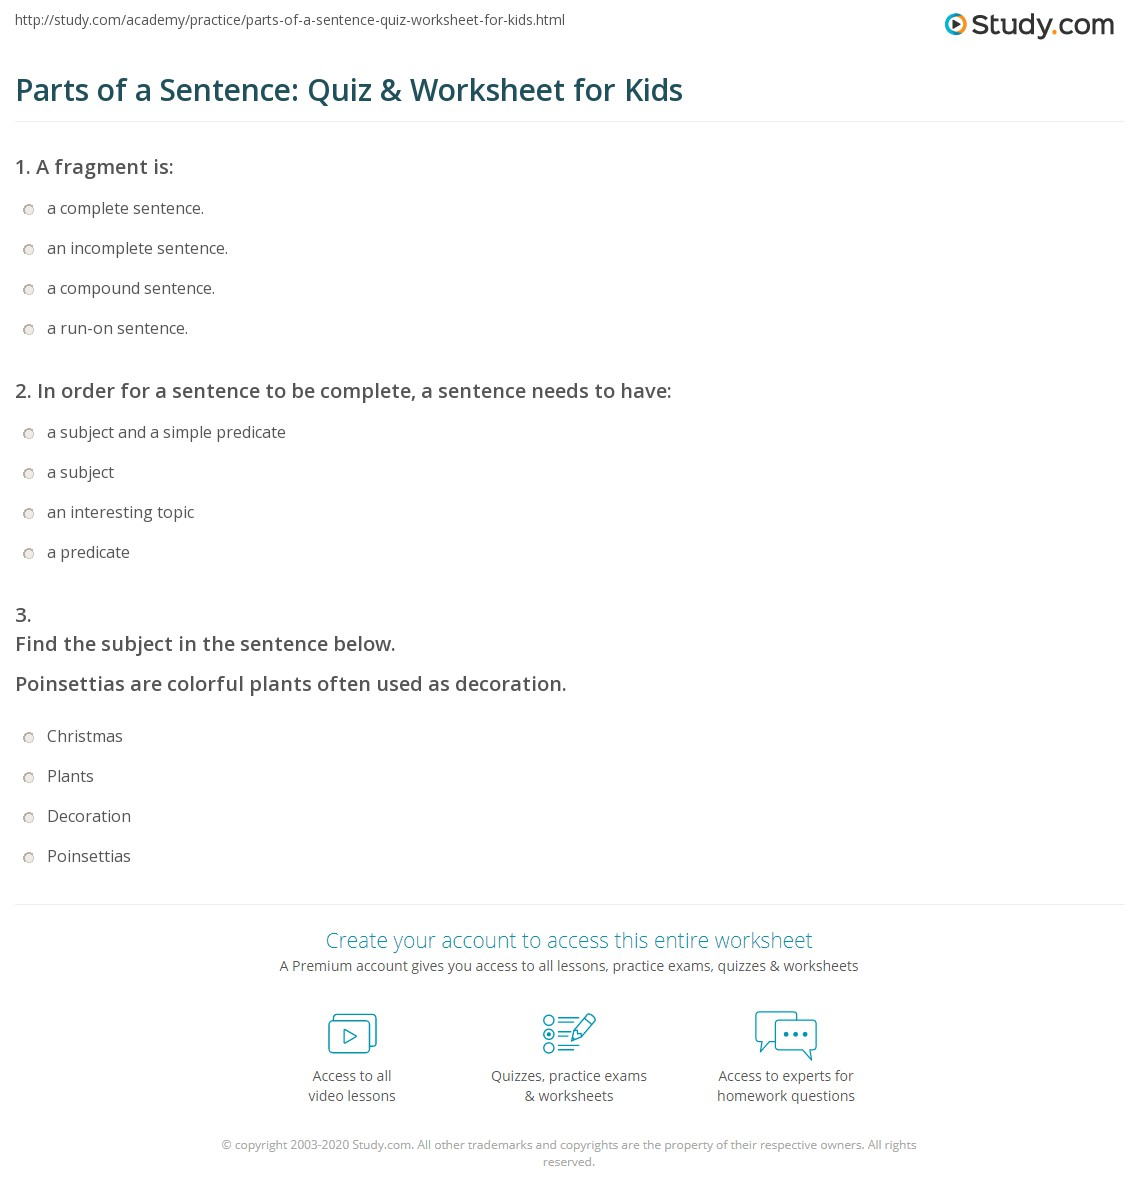 worksheet Simple Subject And Simple Predicate Worksheet simple subject and predicate worksheets with answers abitlikethis 4th grade besides biografia de frida in order for a sentence to be complete needs h